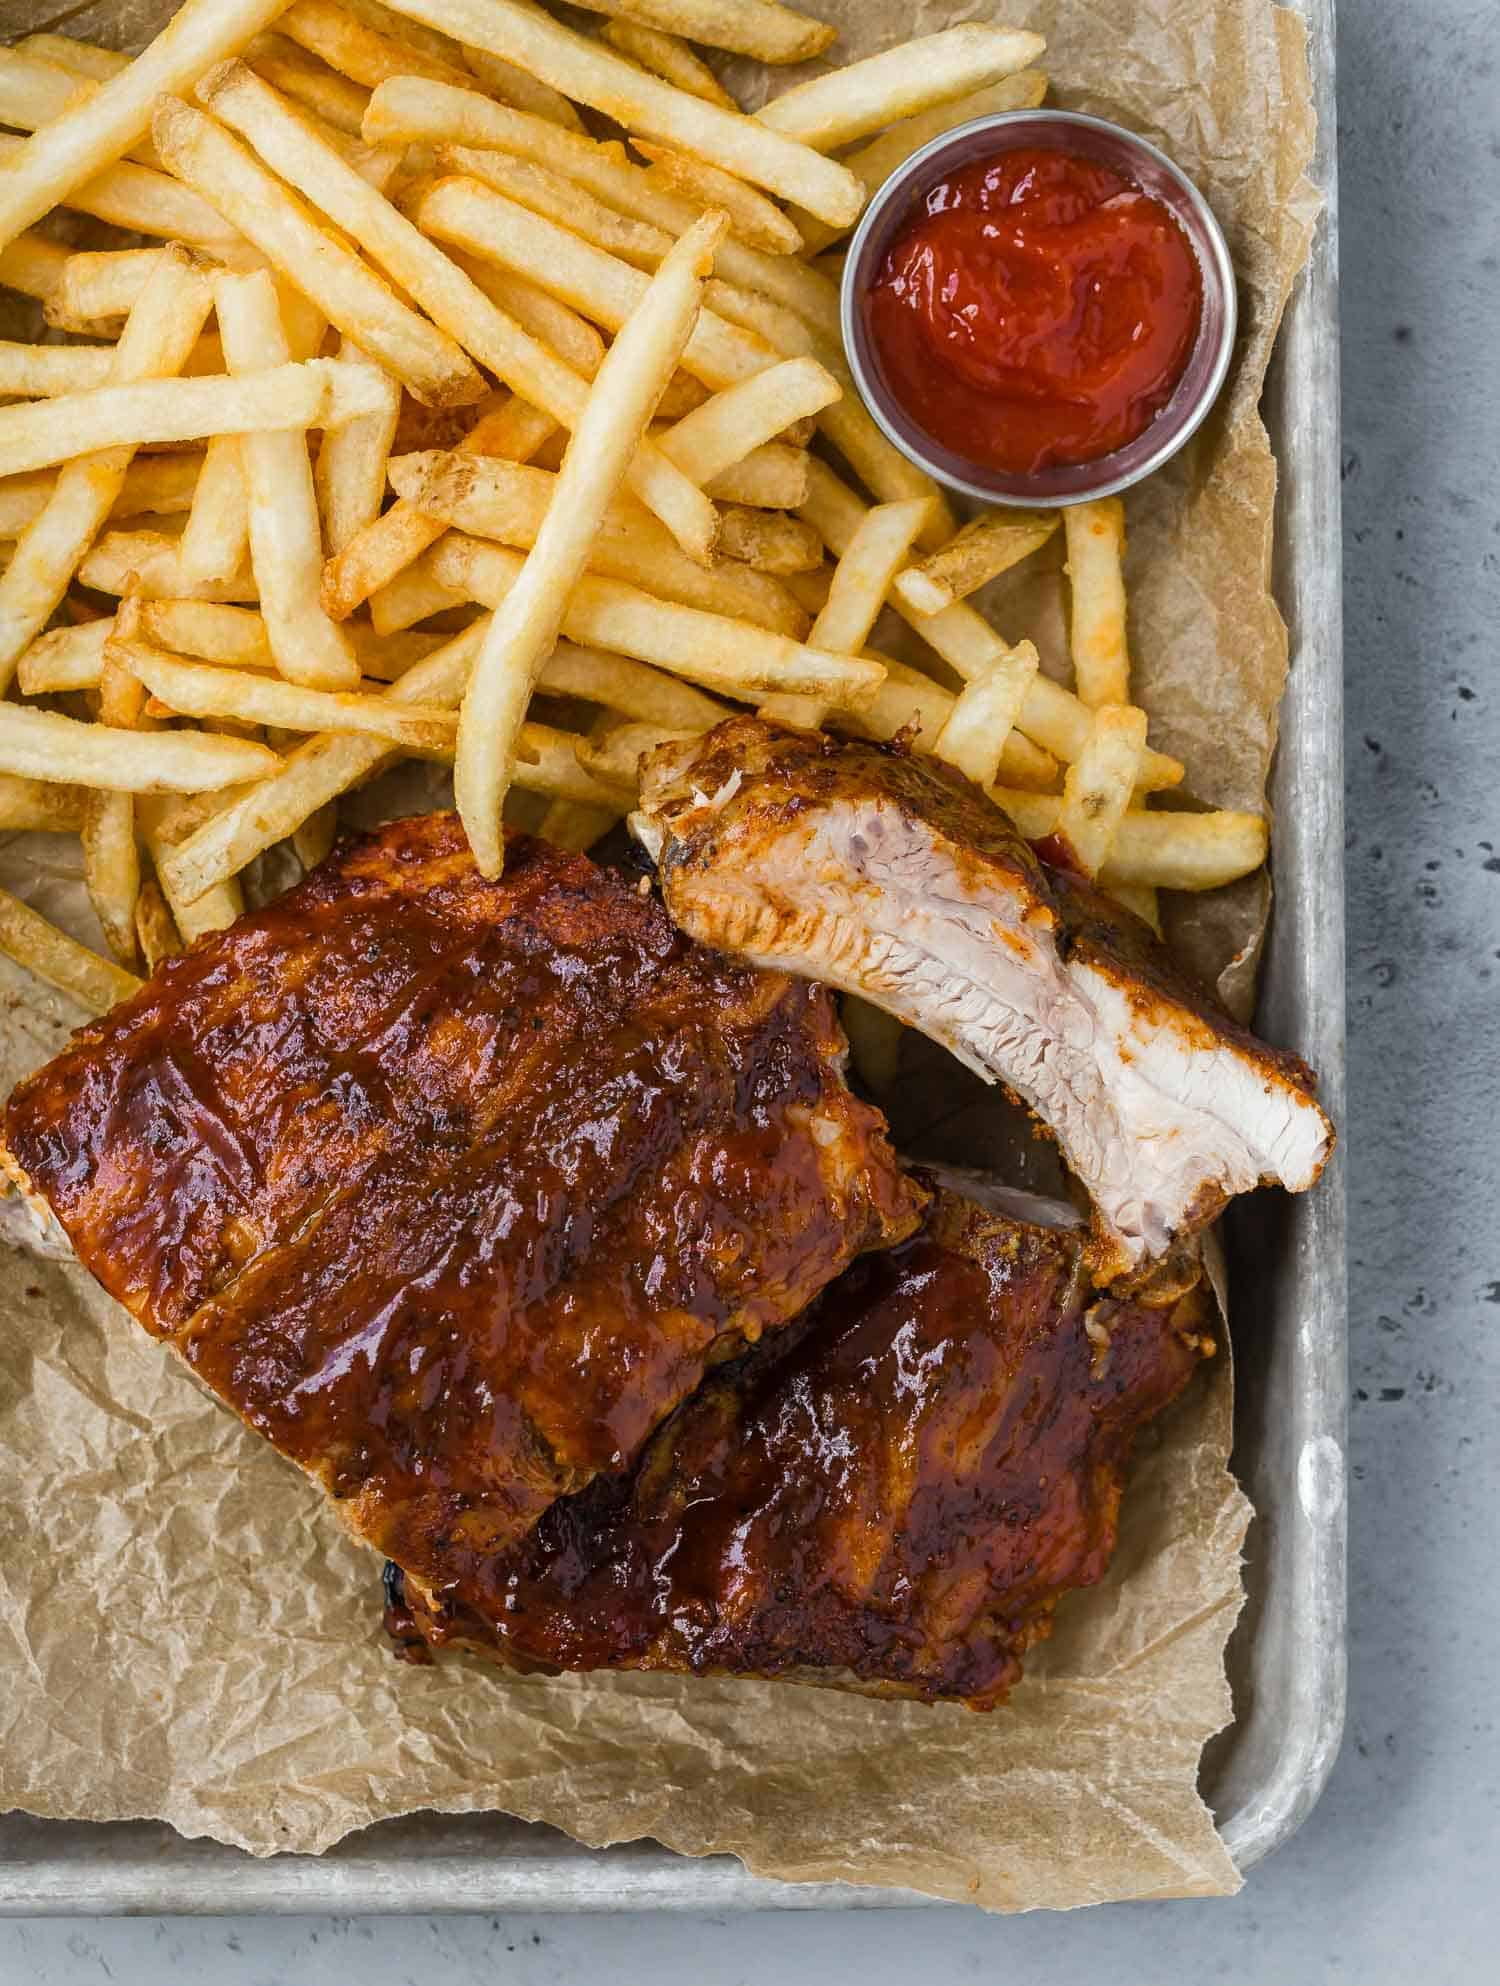 Ribs on a parchment paper lined tray with fries and a small metal cup of ketchup.